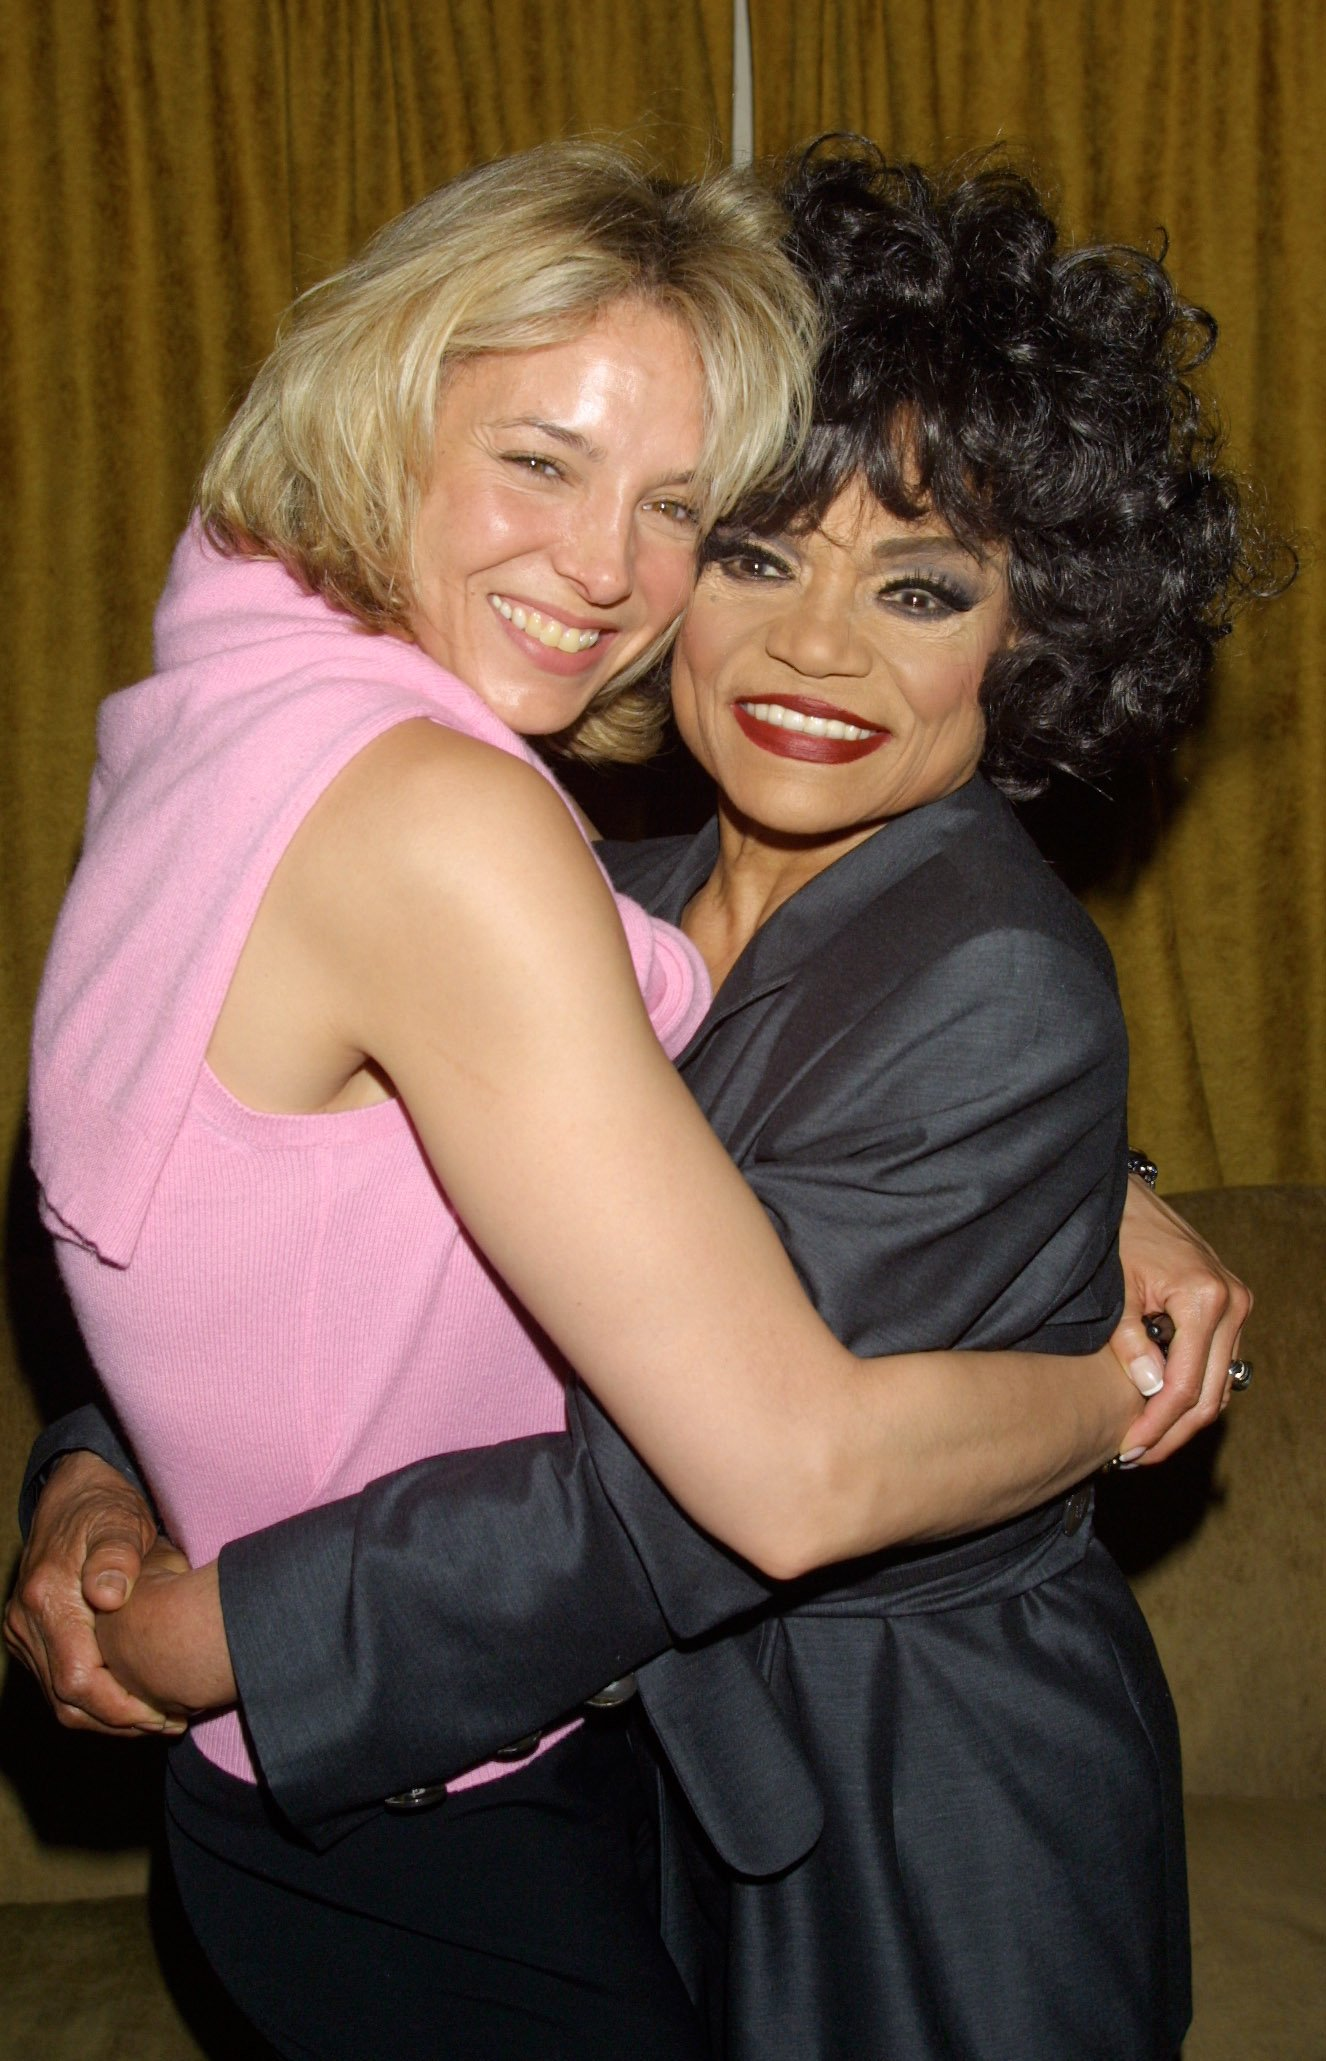 Eartha Kitt and her daughter Kitt Shapiro at the Celebration of Rodgers & Hammerstein's Cinderella at Club 151 in New York City, on May 4, 2001   Photo: Getty Images